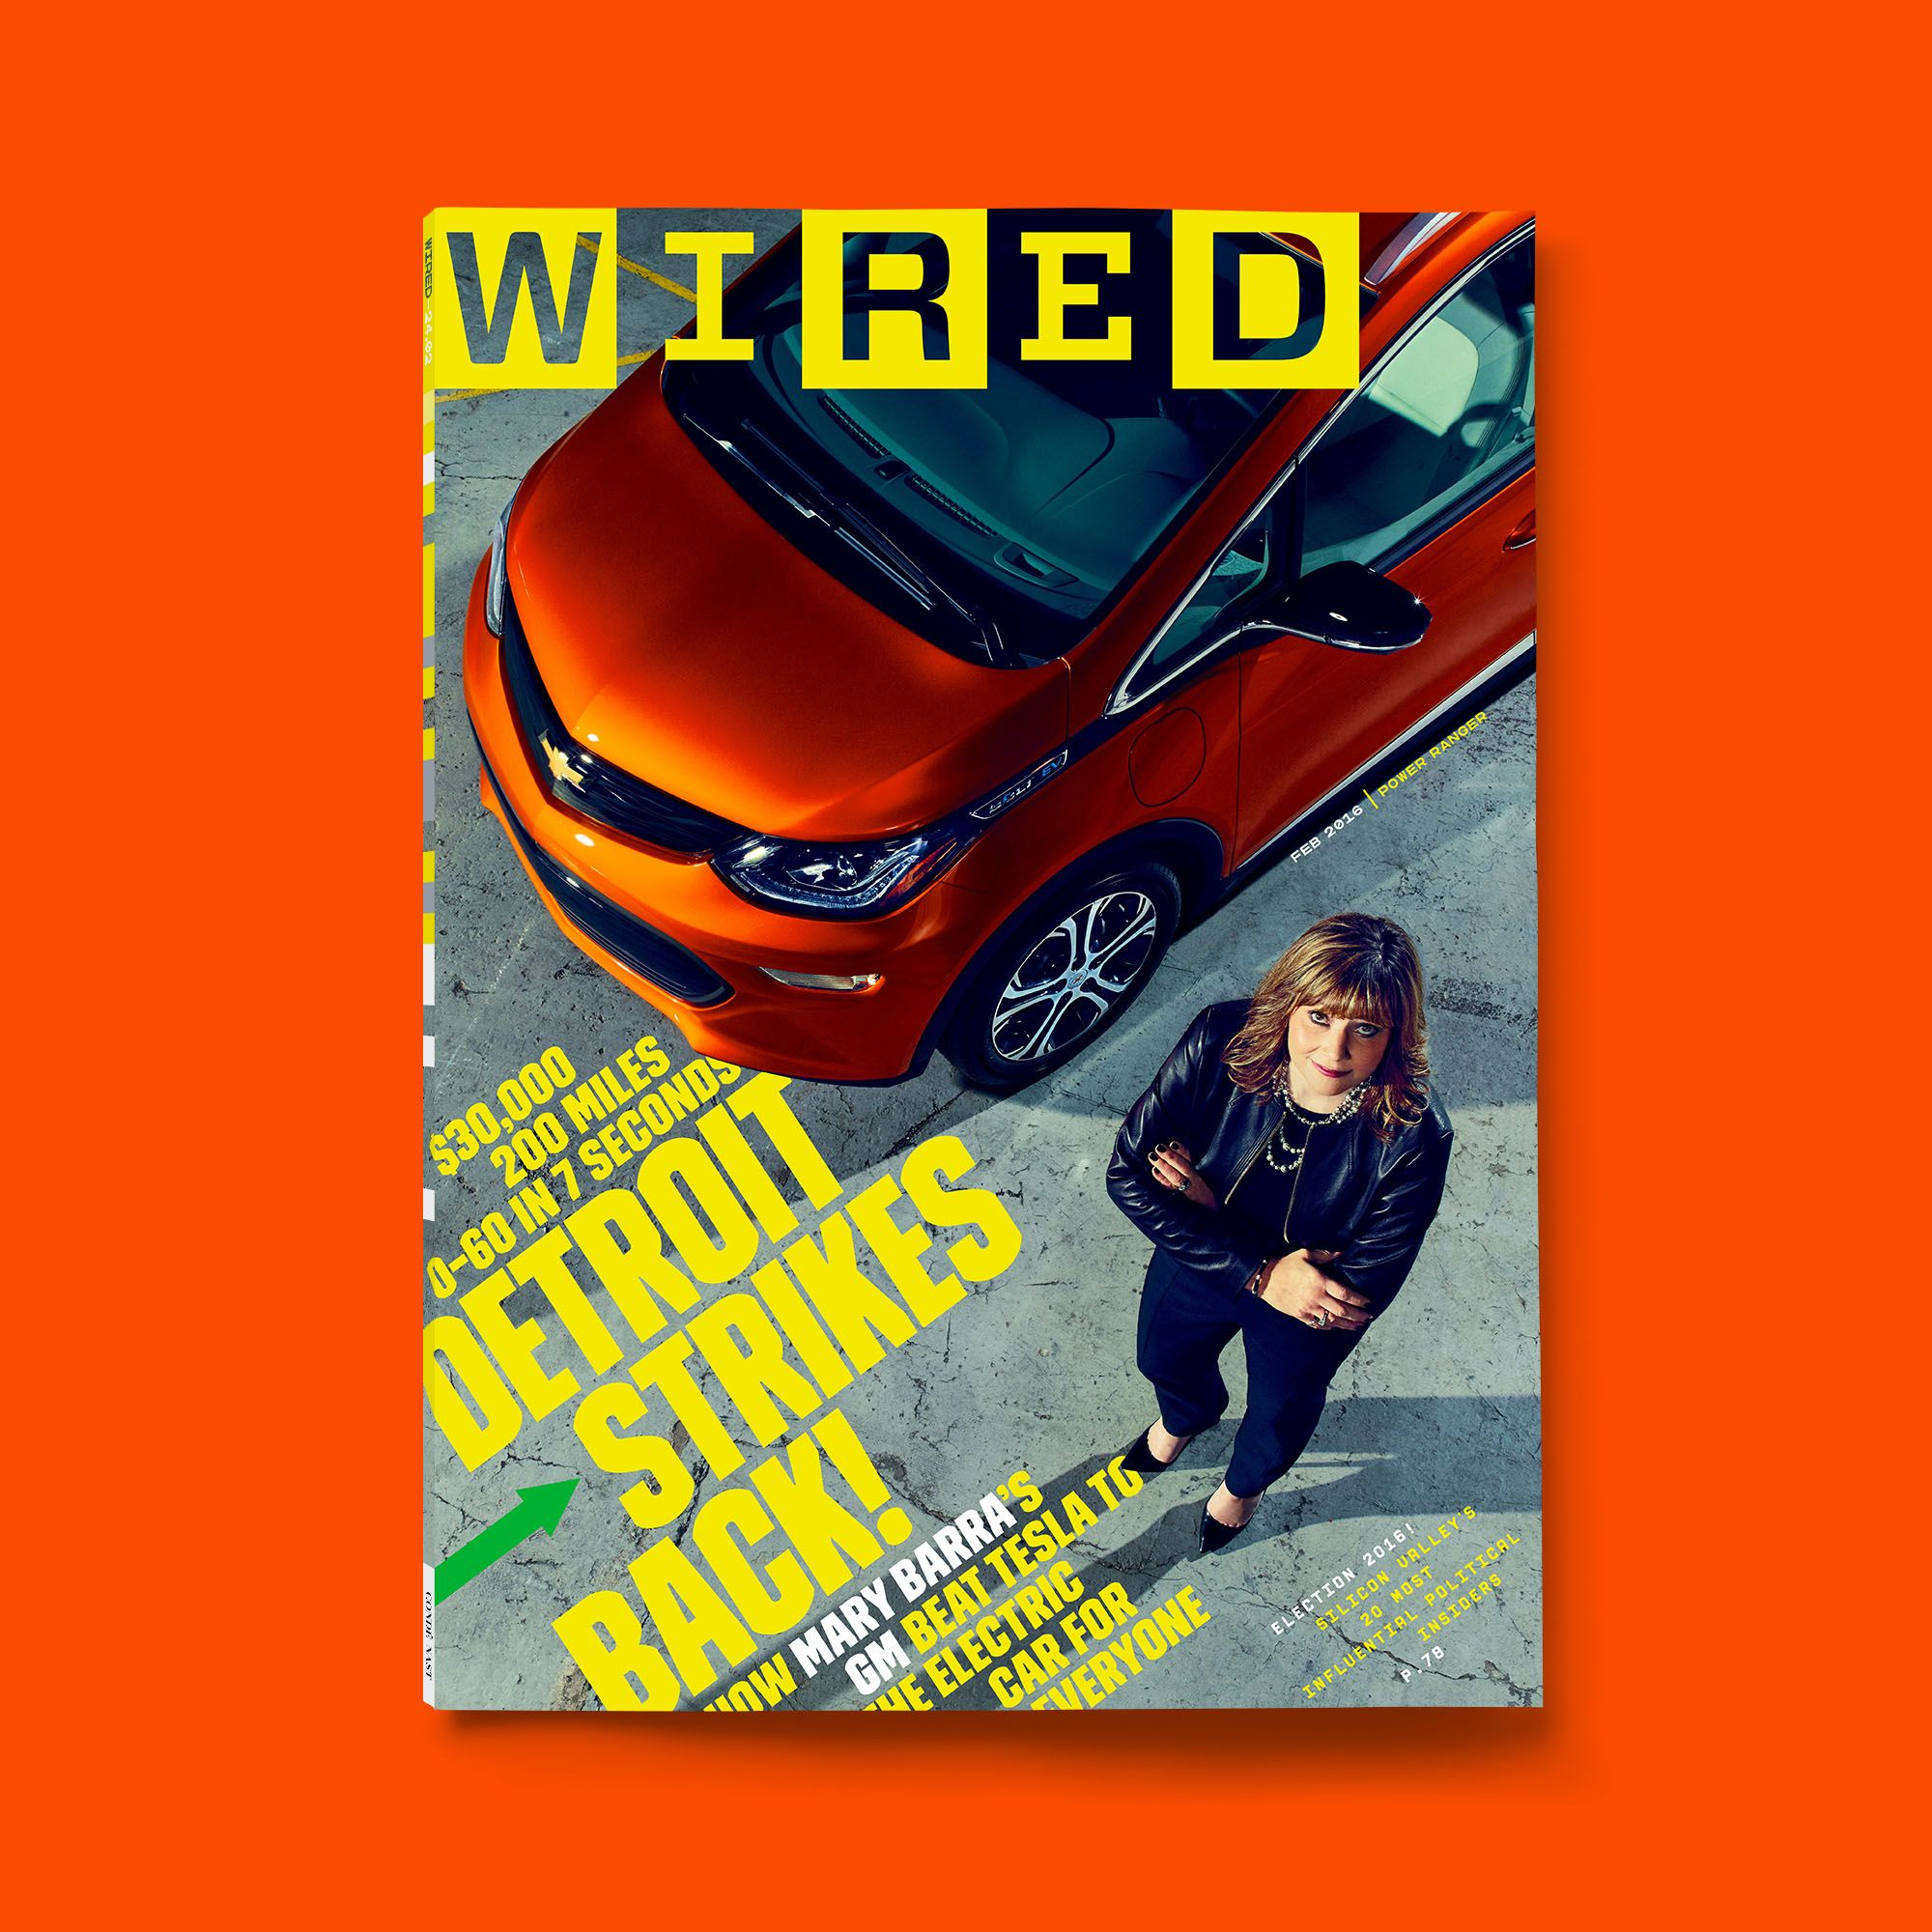 WIRED February 2016 issue cover | WIRED Covers | Pinterest ...